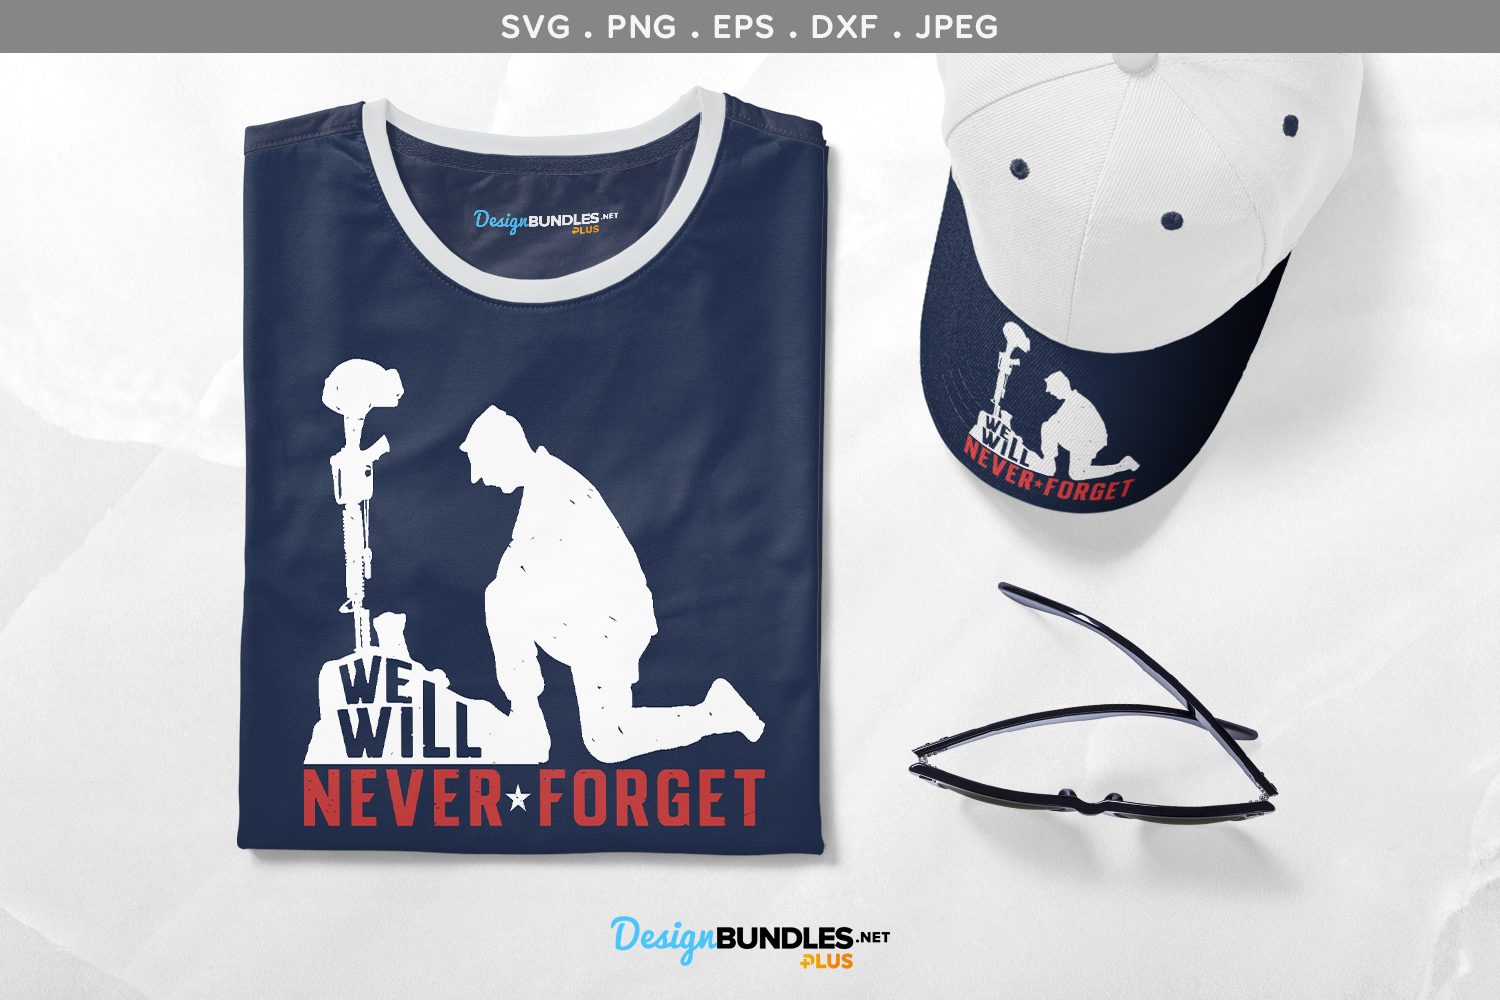 We Will Never Forget - svg, printable example image 1